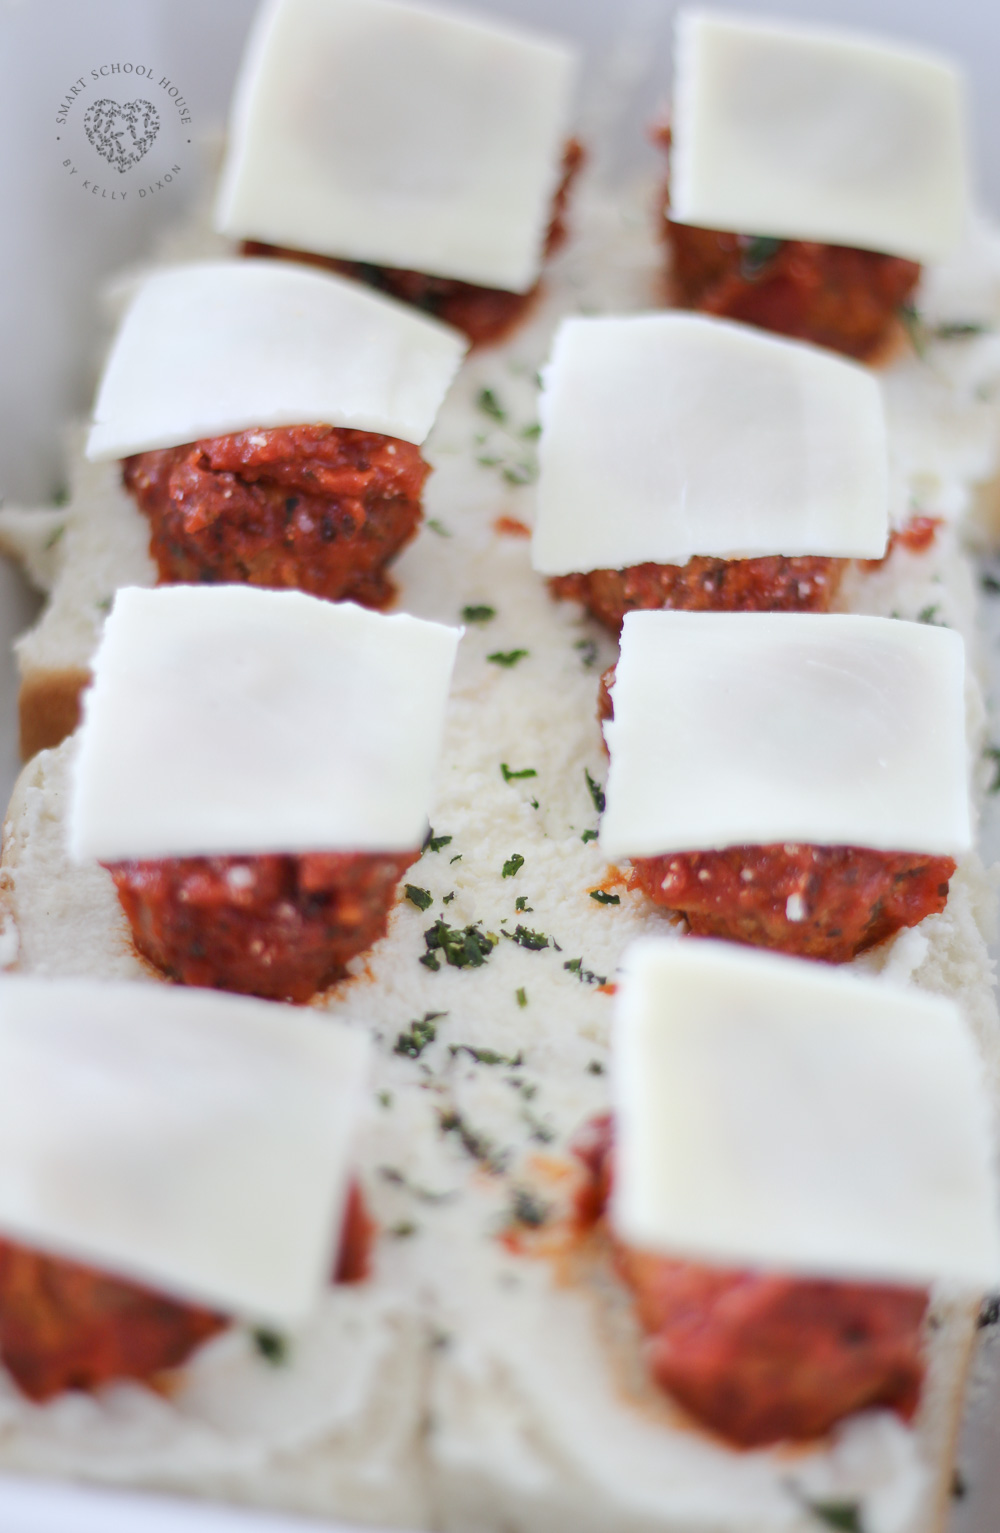 You are going to love this delicious and simple twist on traditional Italian meatball subs